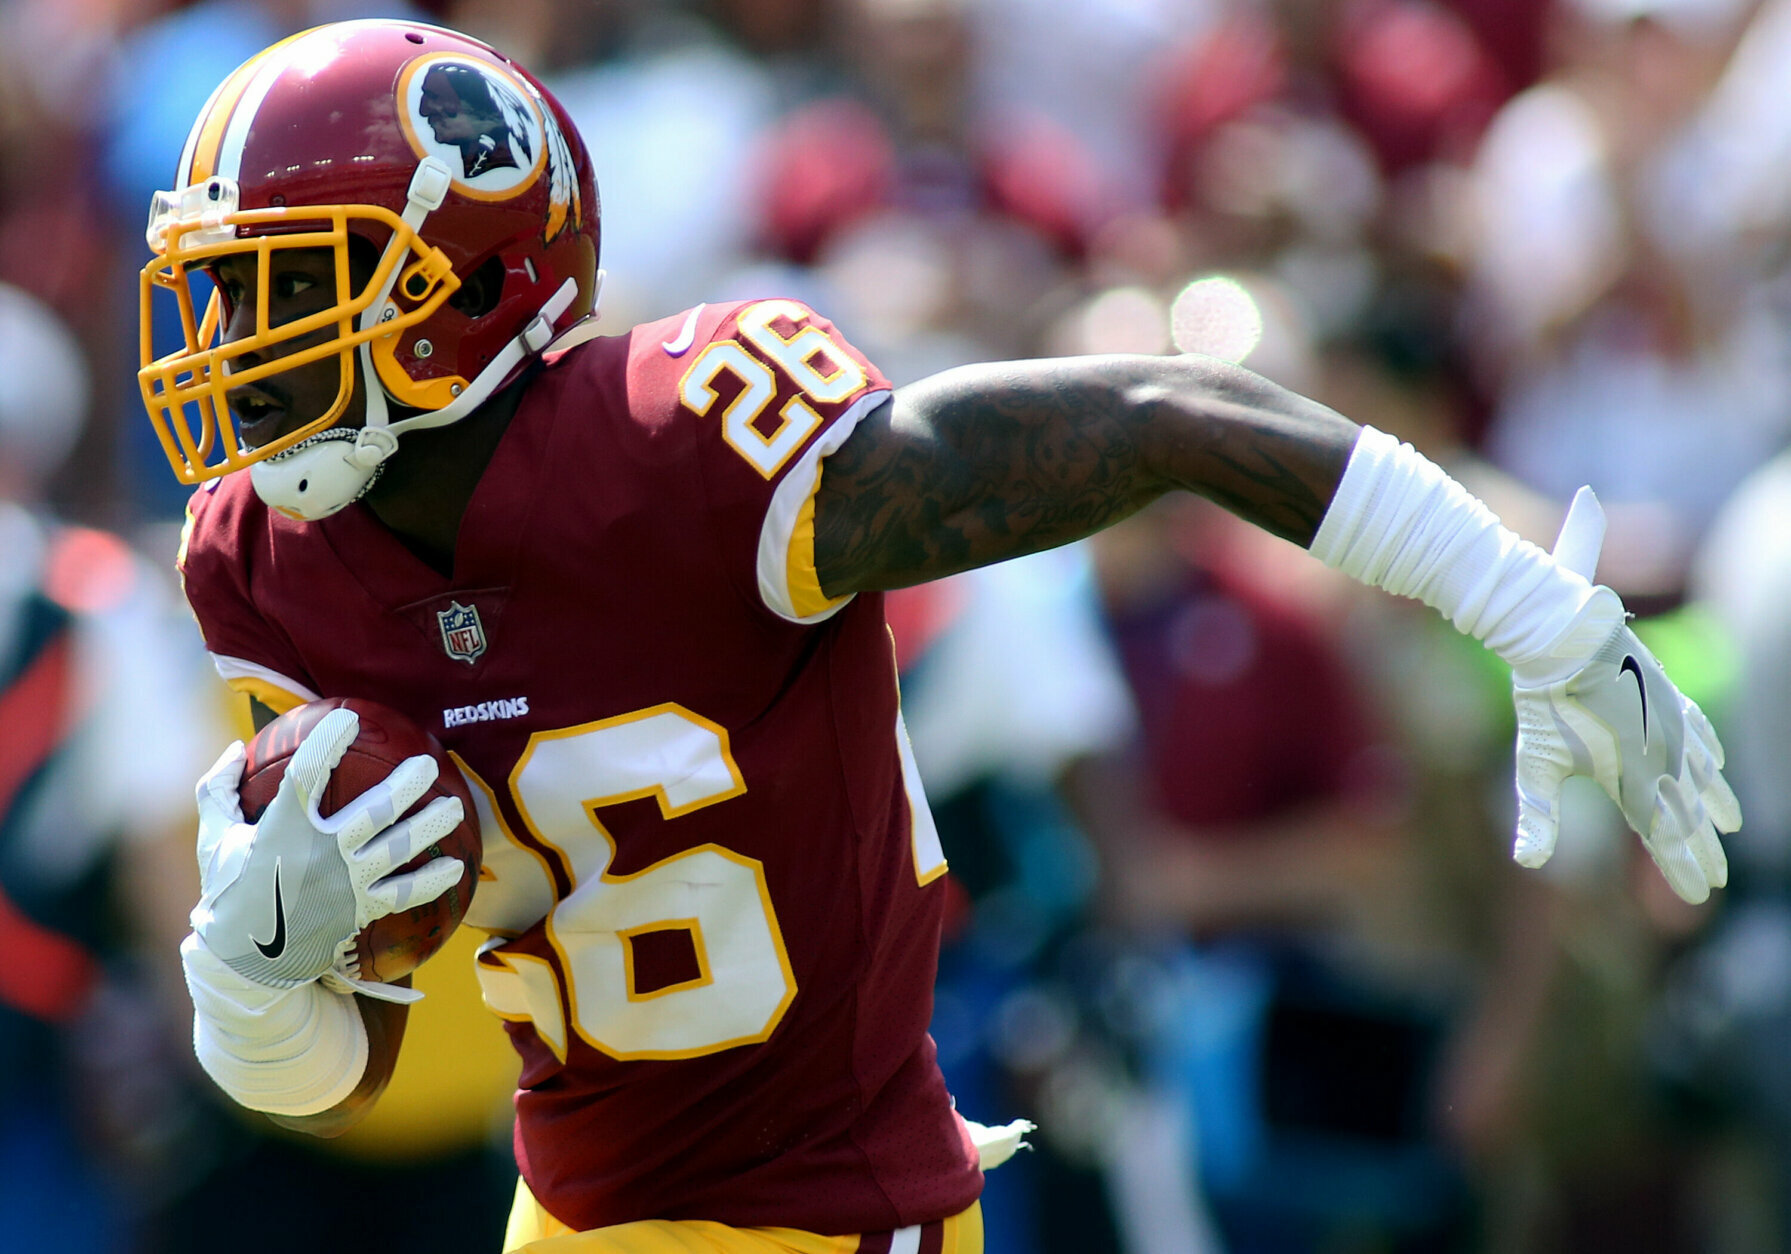 <p>Chiefs cornerback Bashaud Breeland was drafted by the Redskins in the fourth round of the 2014 draft and spent his first four NFL seasons in Burgundy and Gold before leaving in free agency. Like Fuller, Breeland will be an unrestricted free agent in March.</p>